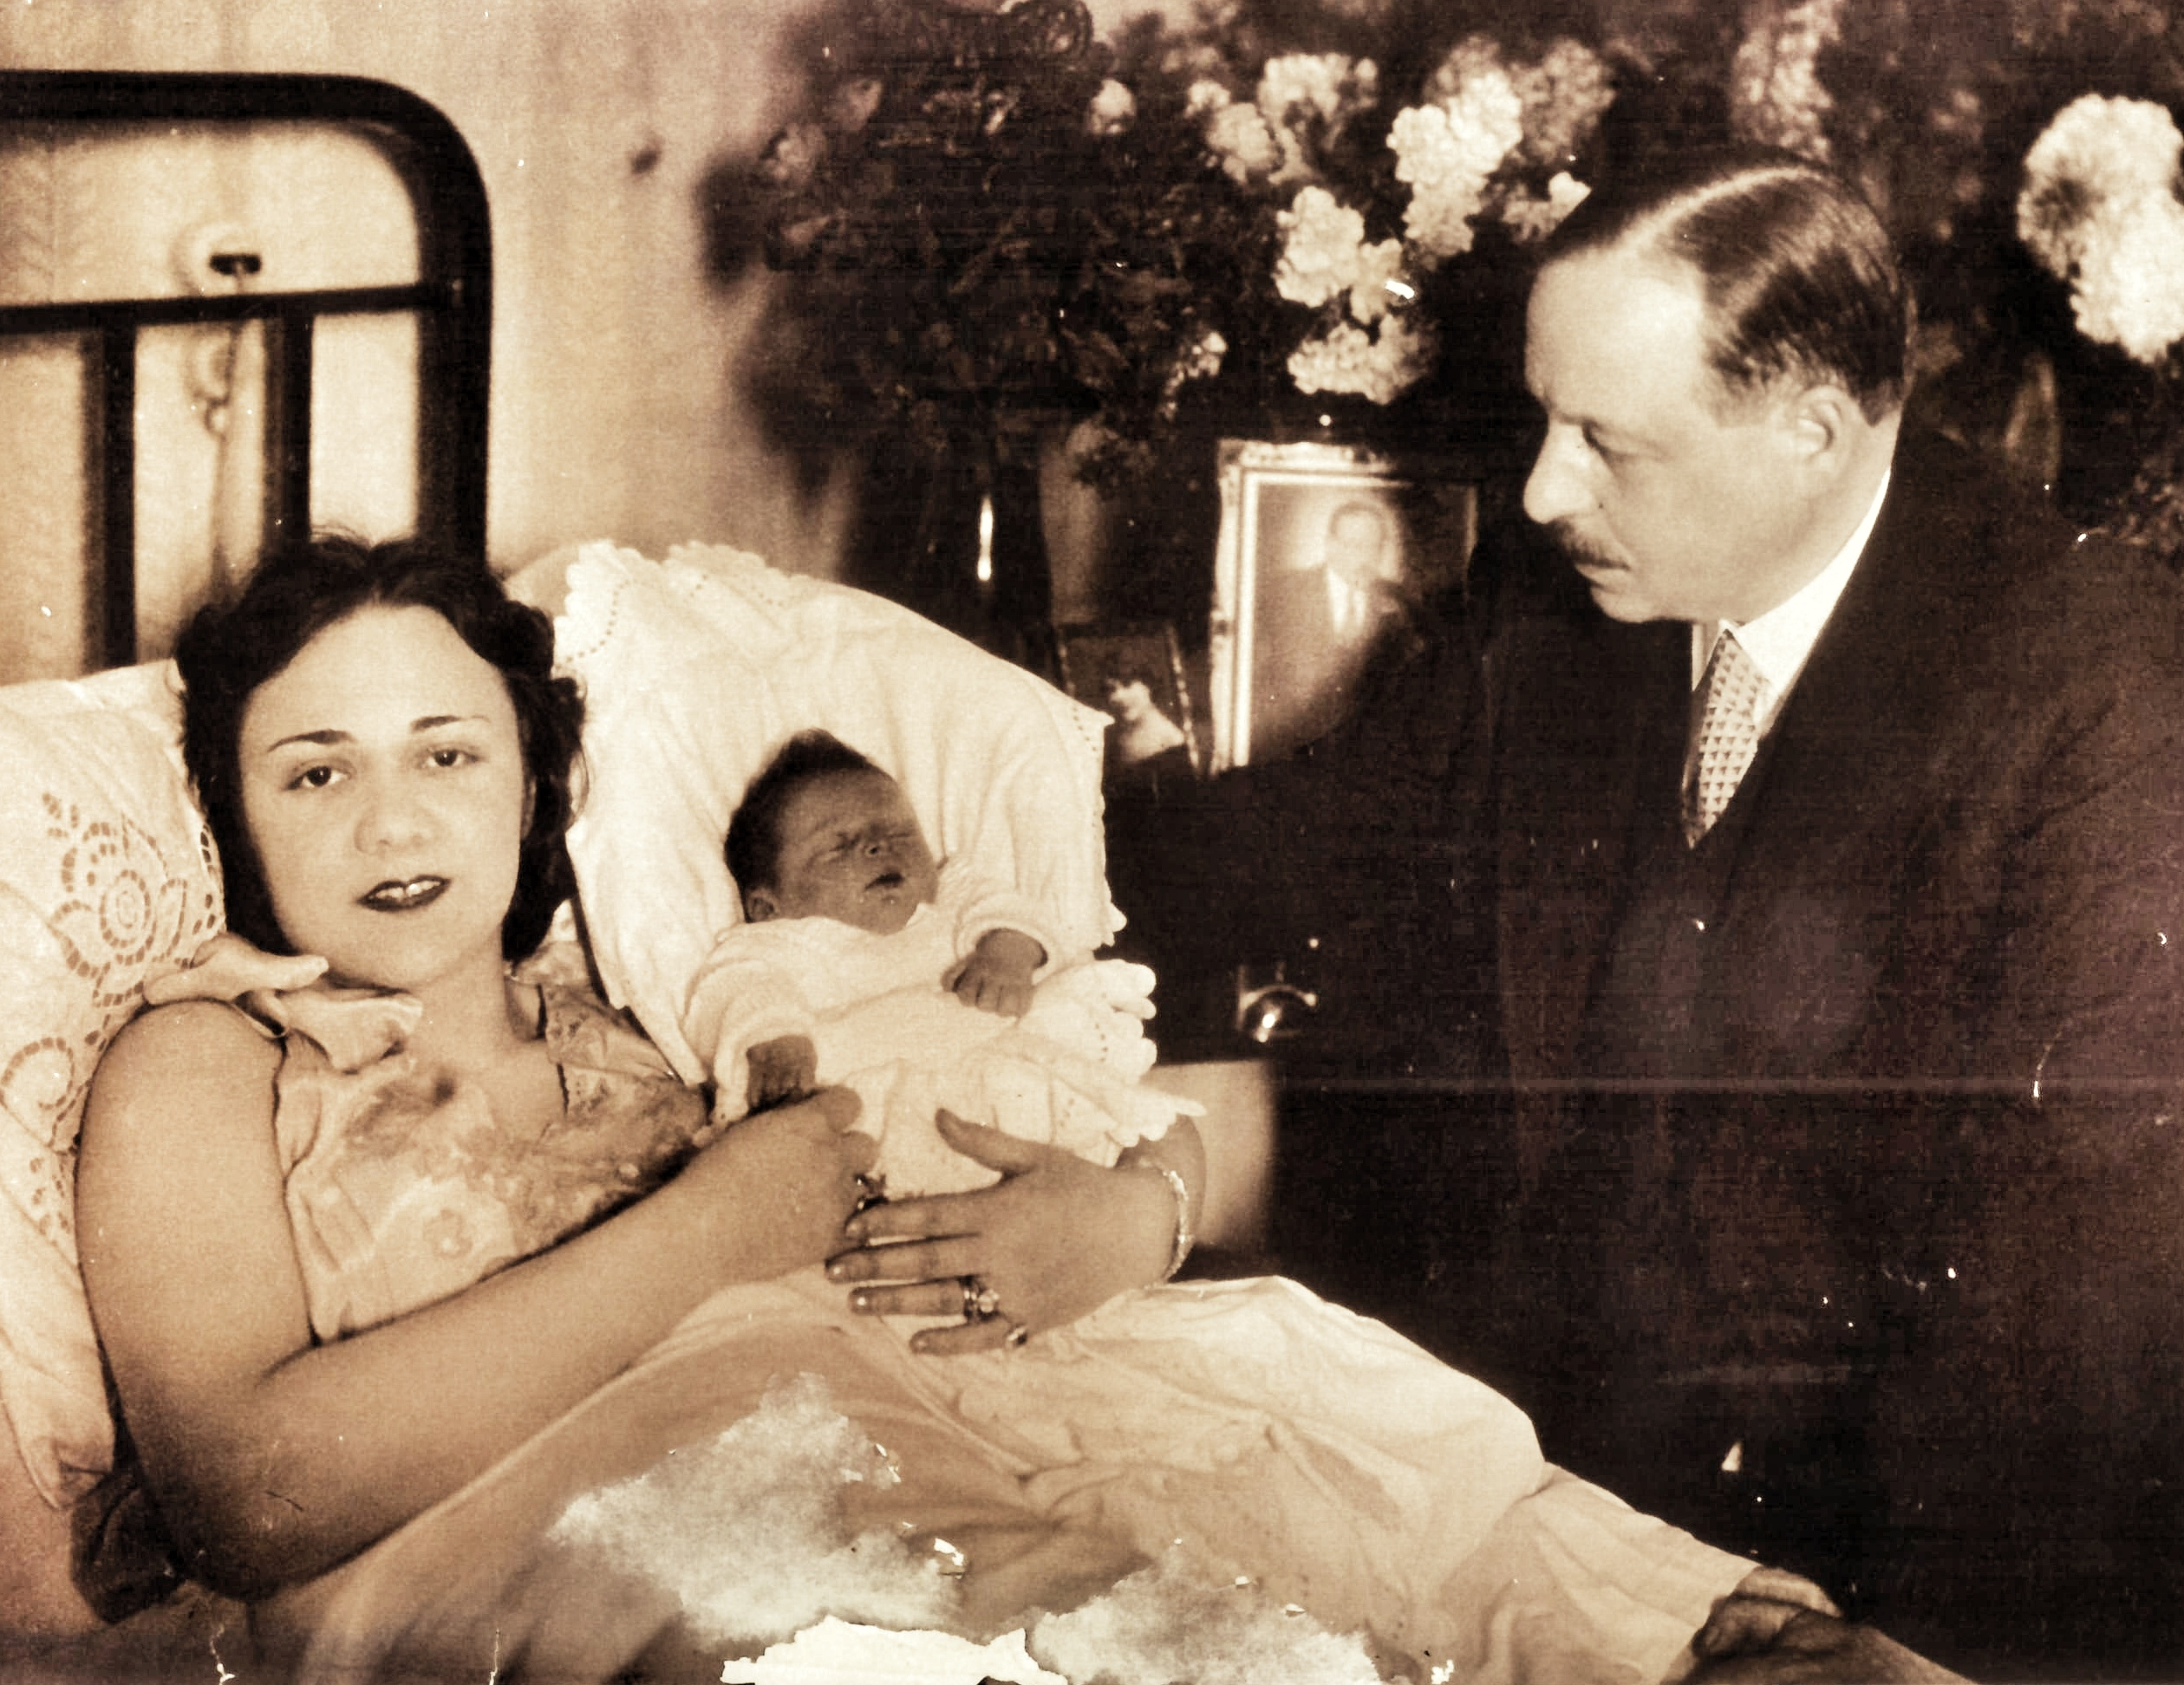 Vera Kálmán in 1929, holding her first-born child Karl.